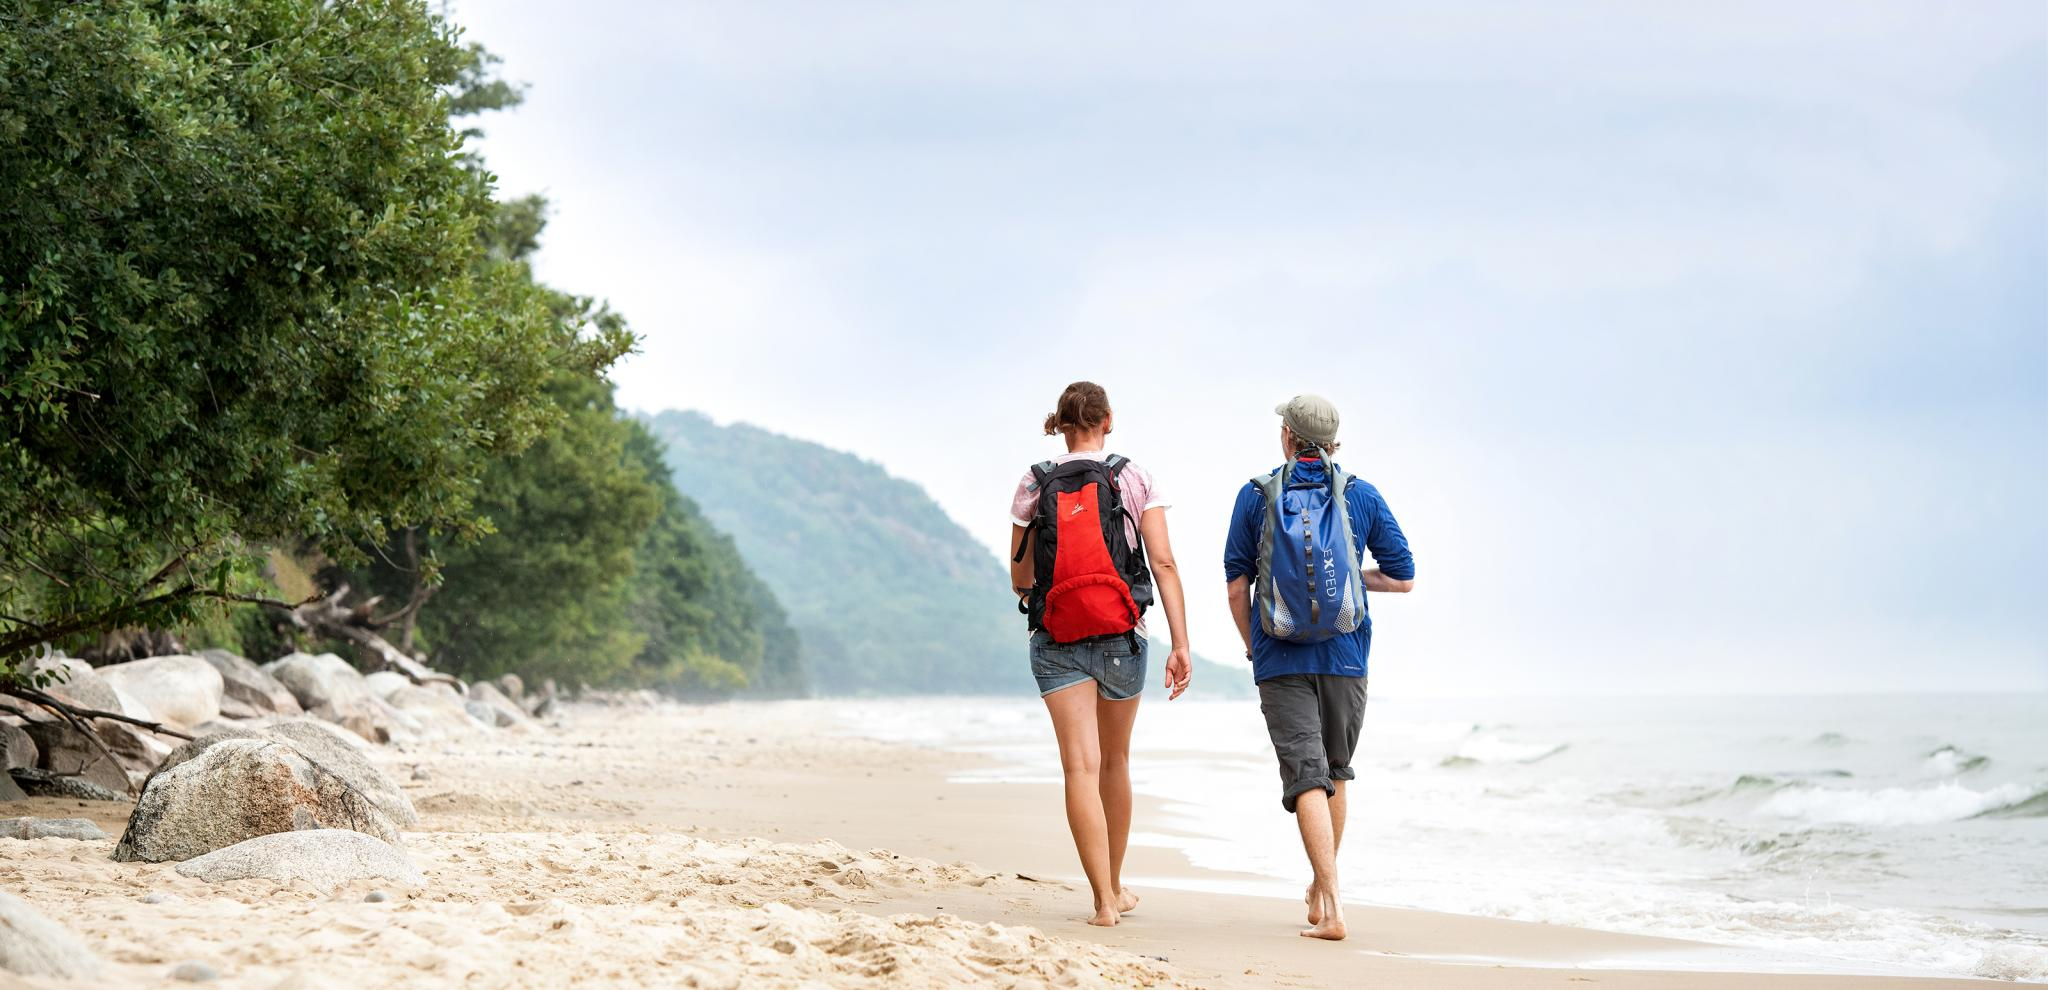 Couple hiking at the beach by Stenshuvud